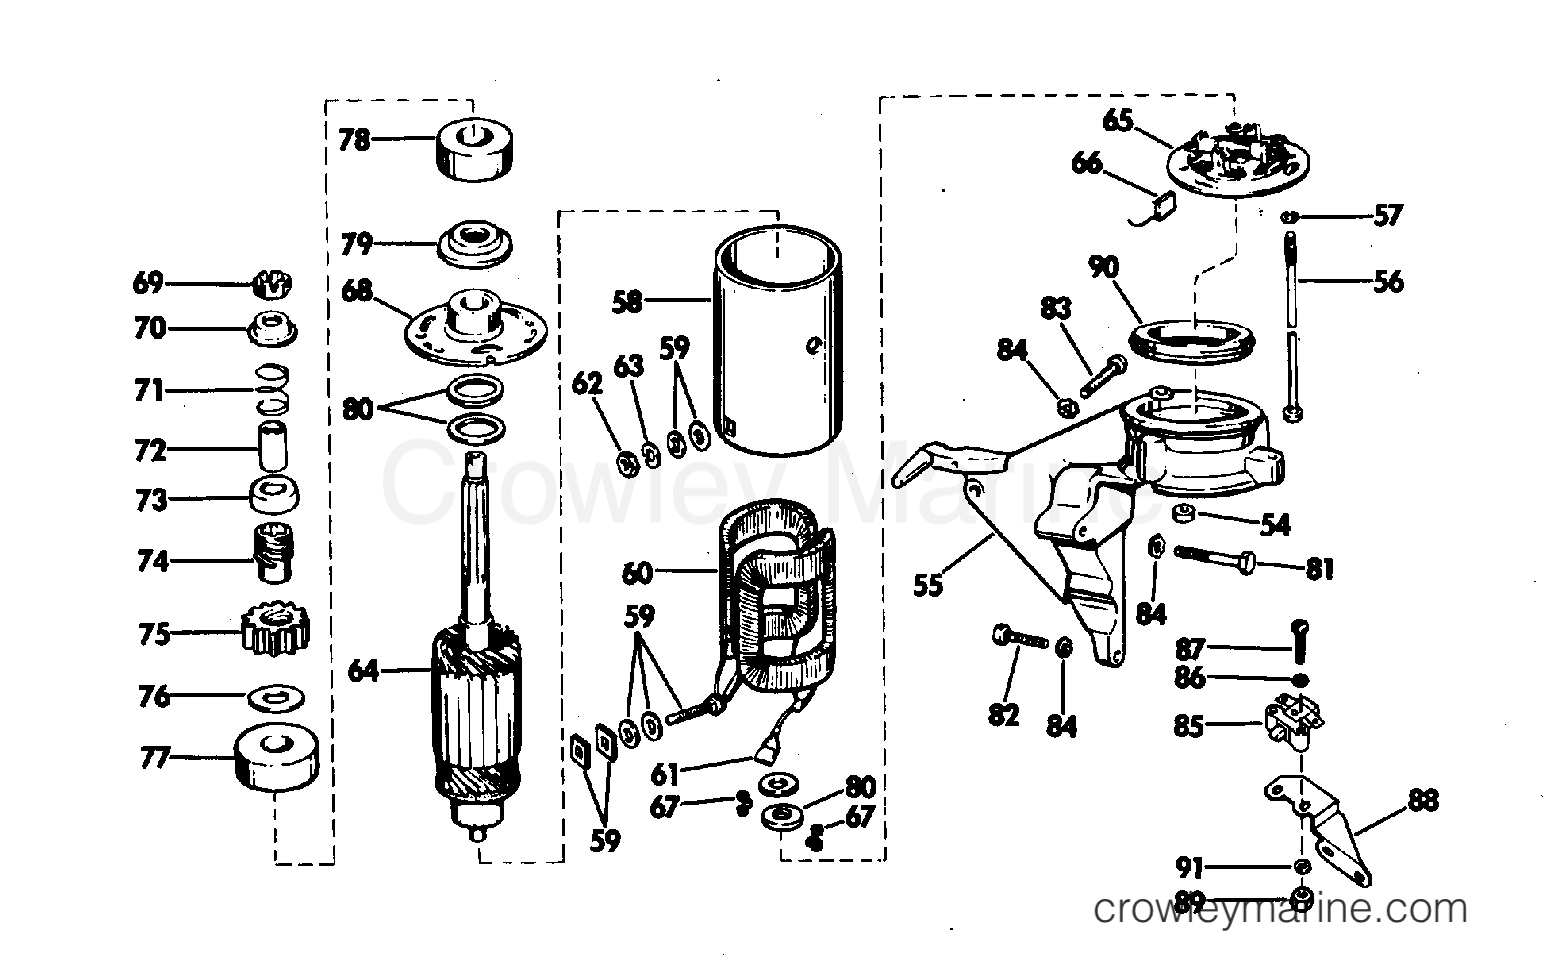 Evinrude Electrical System Diagram